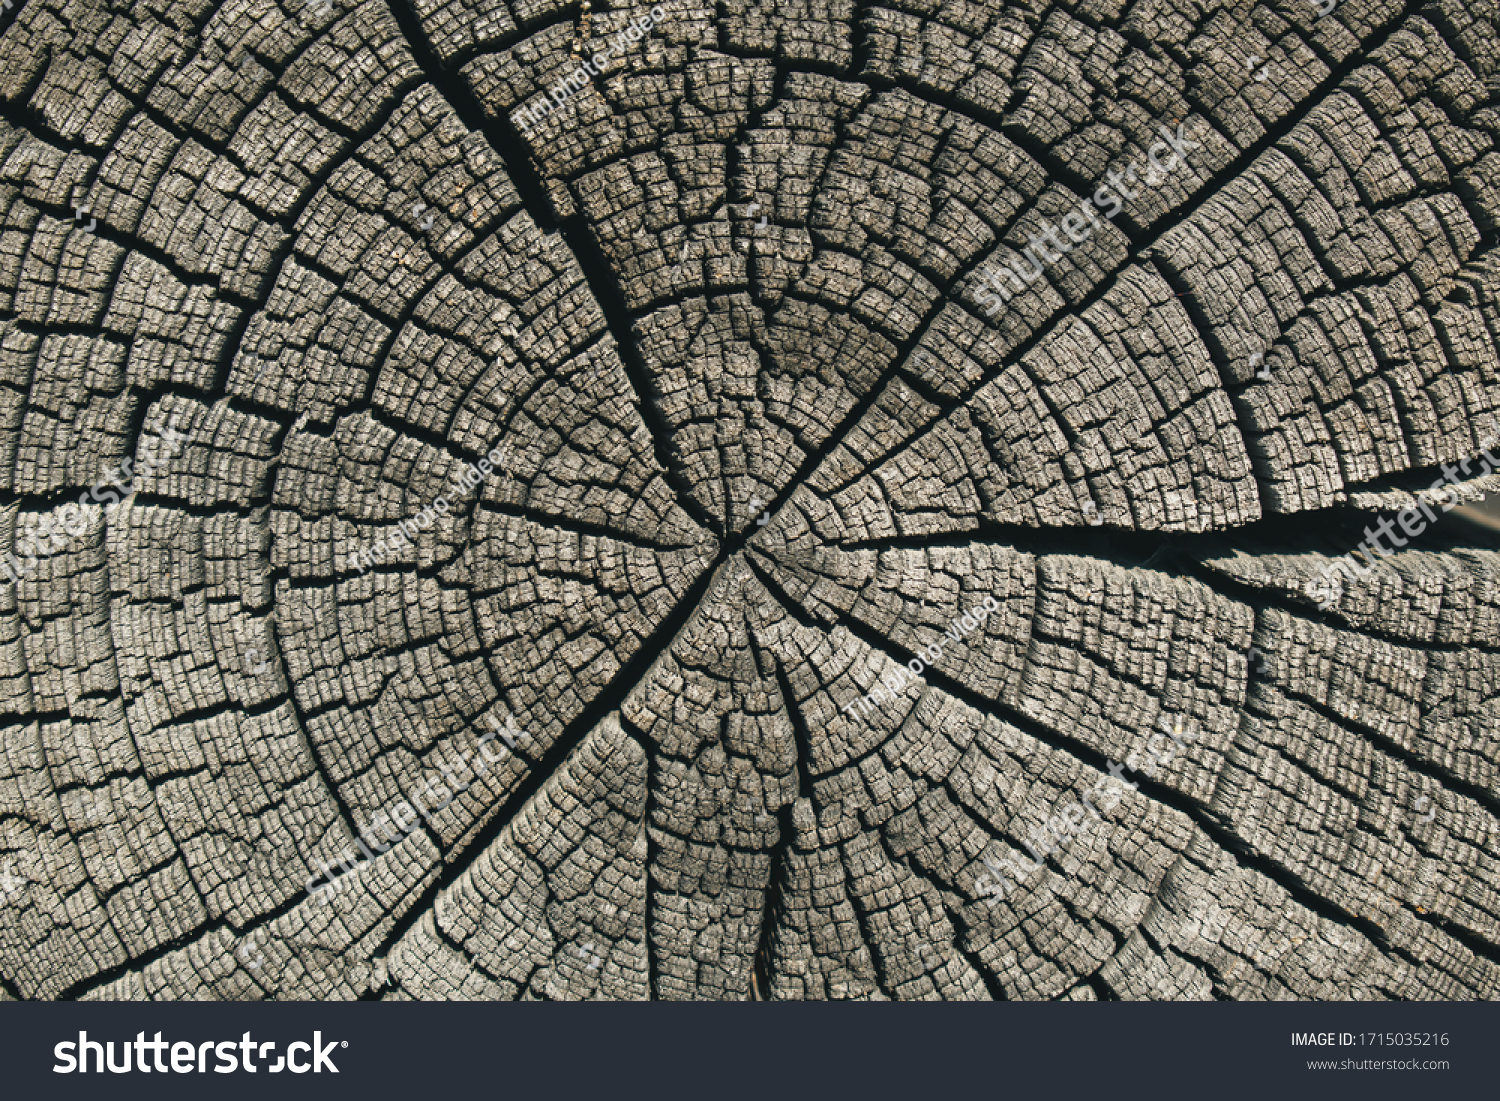 stock-photo-butt-of-old-log-for-backdrop